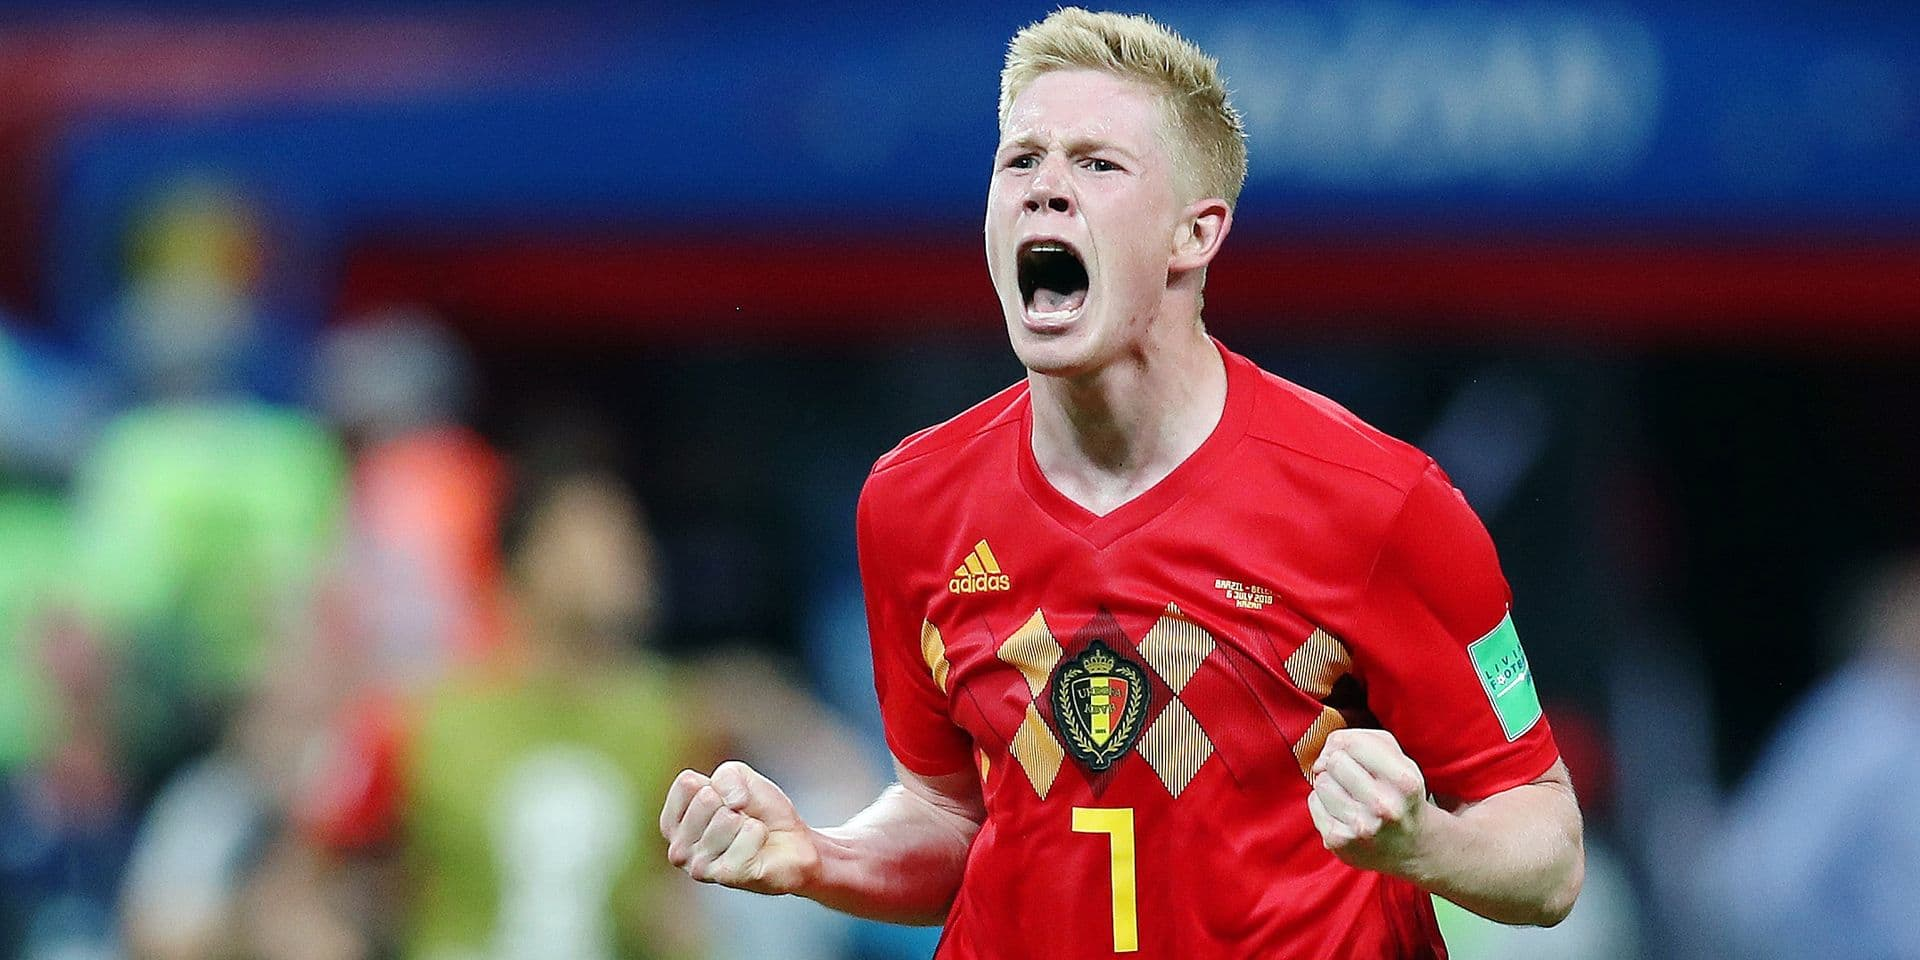 Belgium's Kevin De Bruyne celebrates after a soccer game between Belgian national soccer team the Red Devils and Brazil in Kazan, Russia, Friday 06 July 2018, the quarter-finals of the 2018 FIFA World Cup. BELGA PHOTO BRUNO FAHY